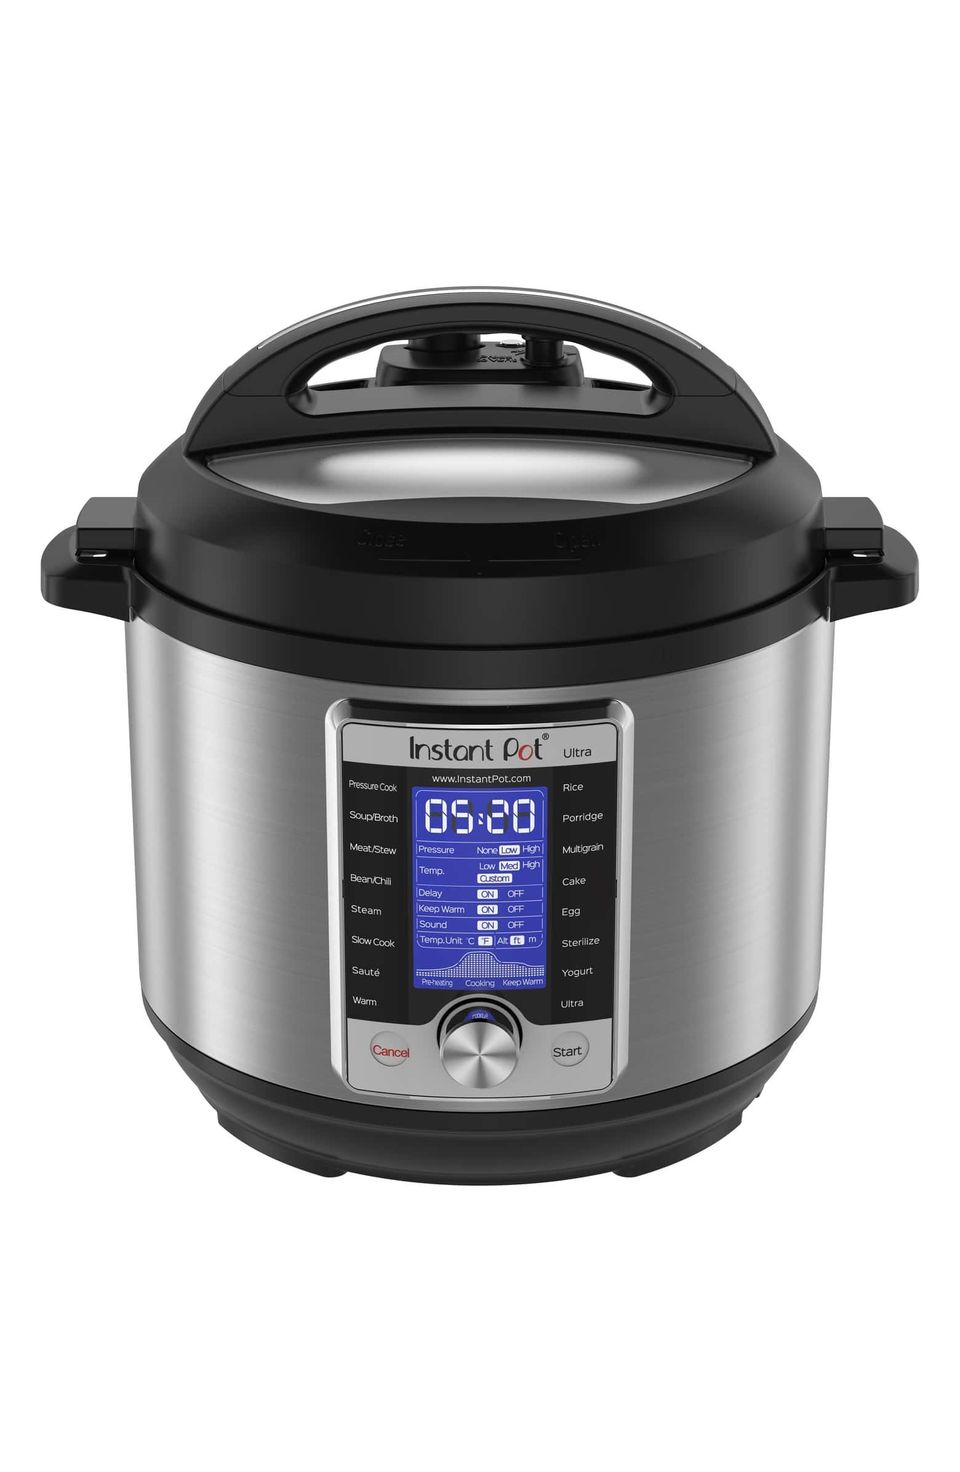 Where To Buy An Instant Pot Cheap On Black Friday